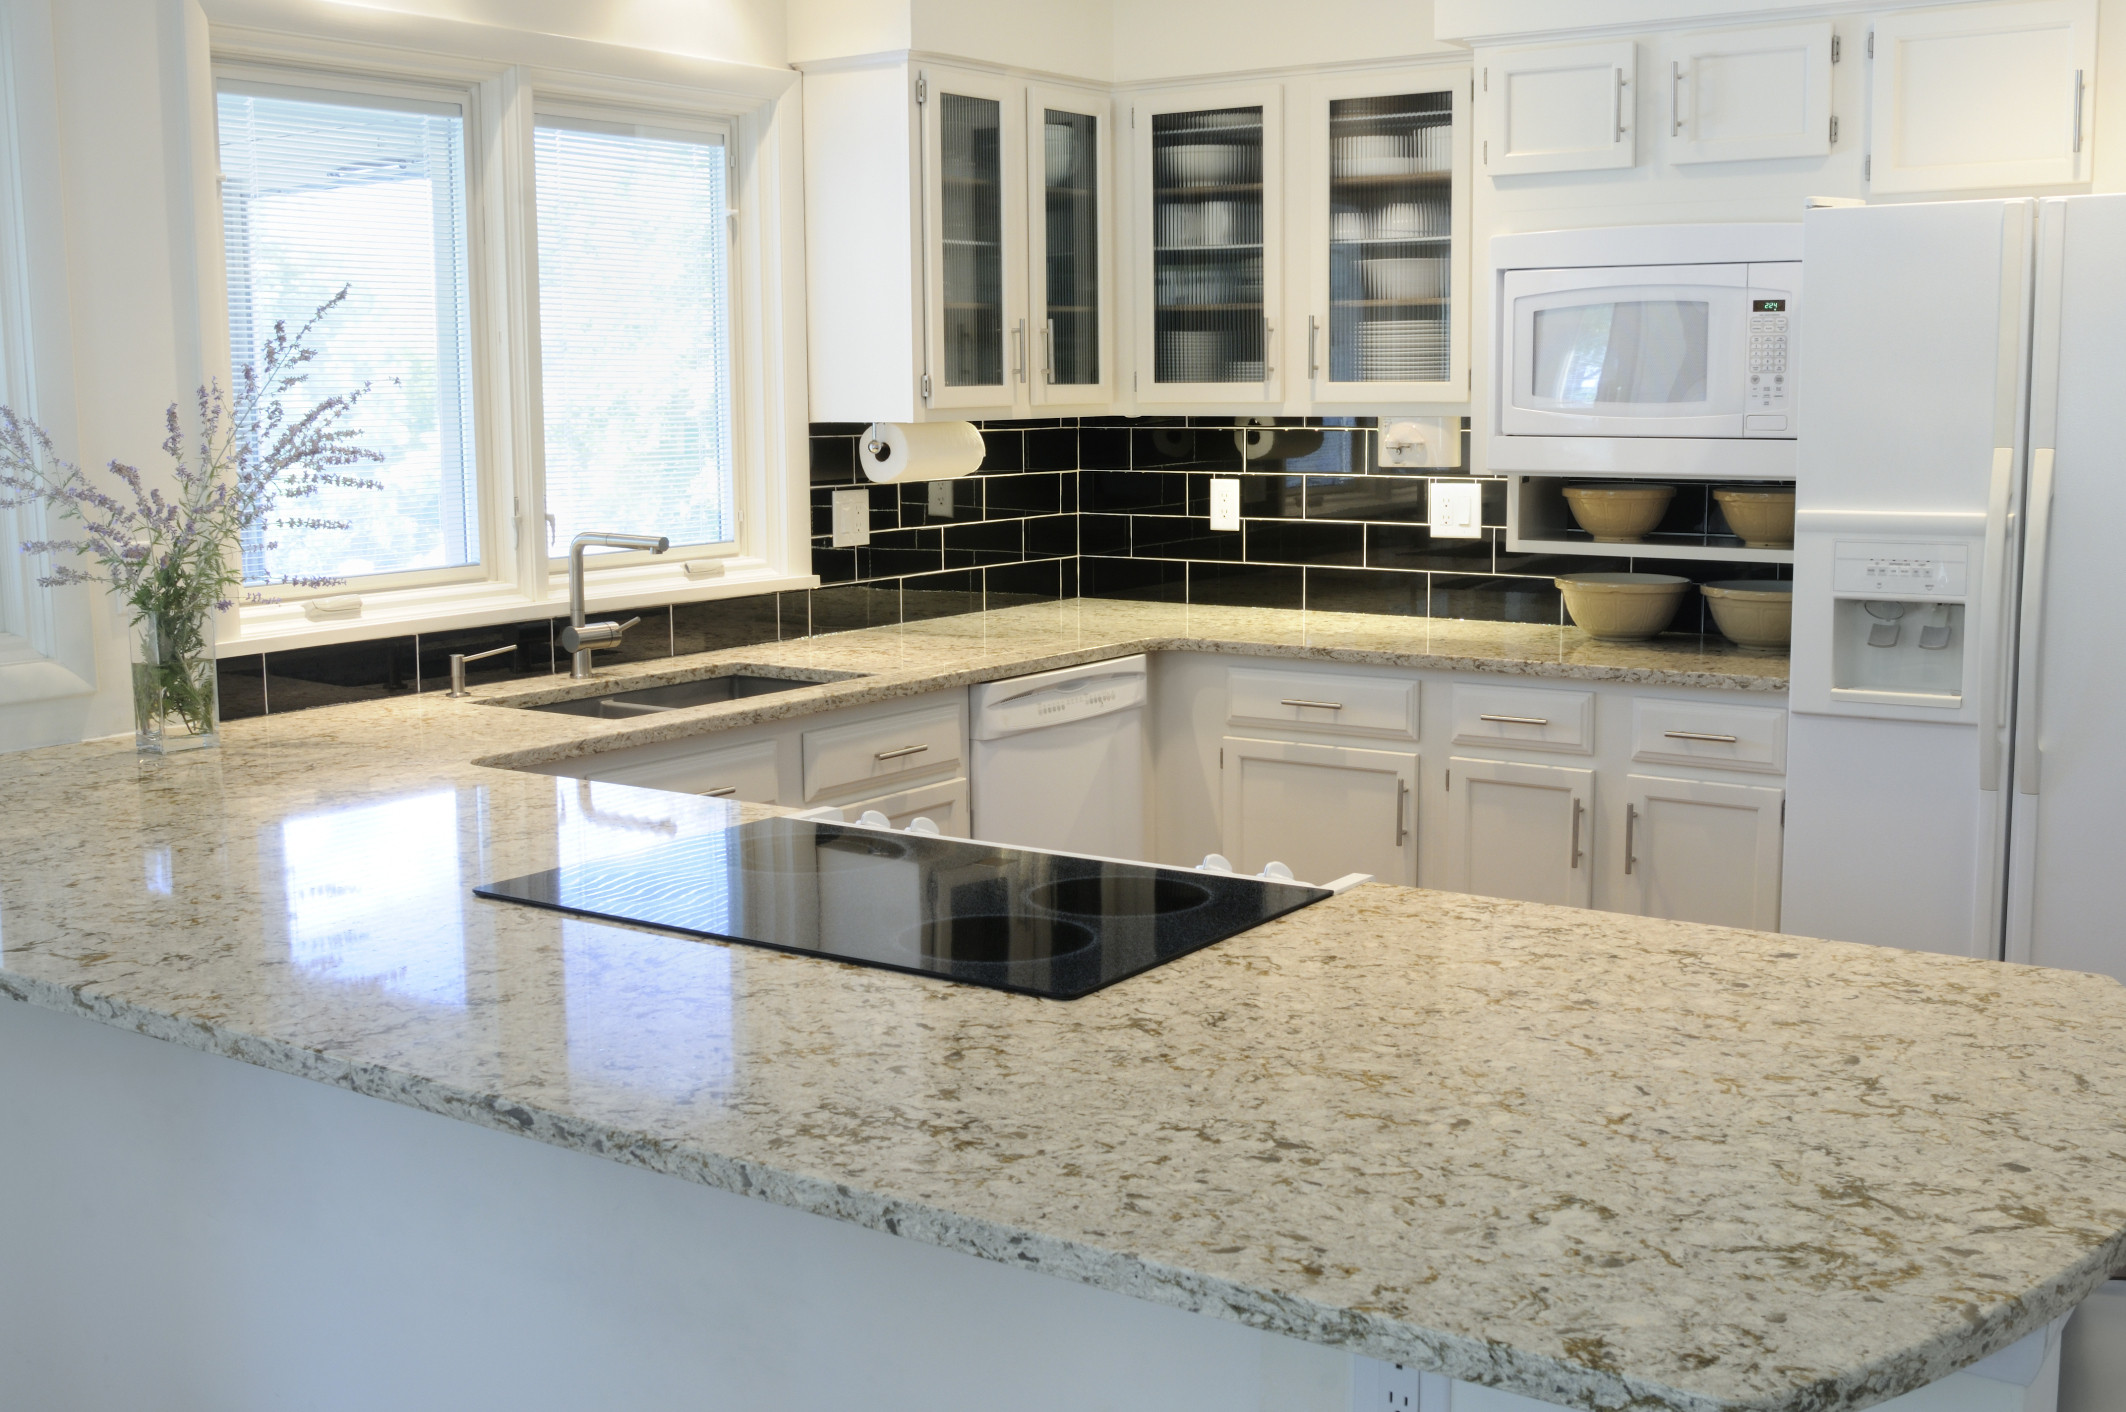 Marble Vs Granite Kitchen Countertops 10 Reasons To Let Go Of The Granite Obsession Already Huffpost